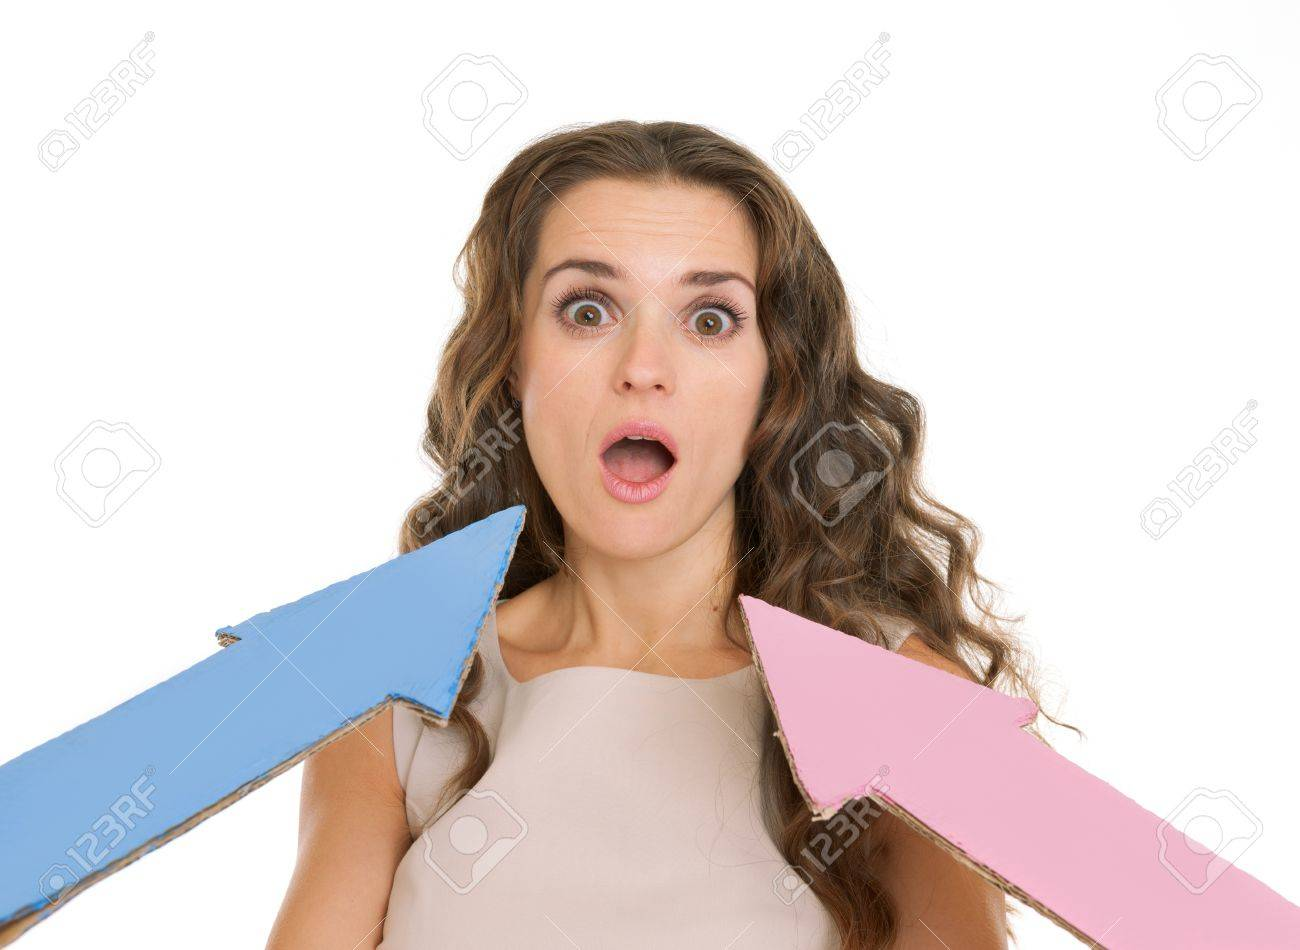 Arrows points on confused young woman Stock Photo - 17382830